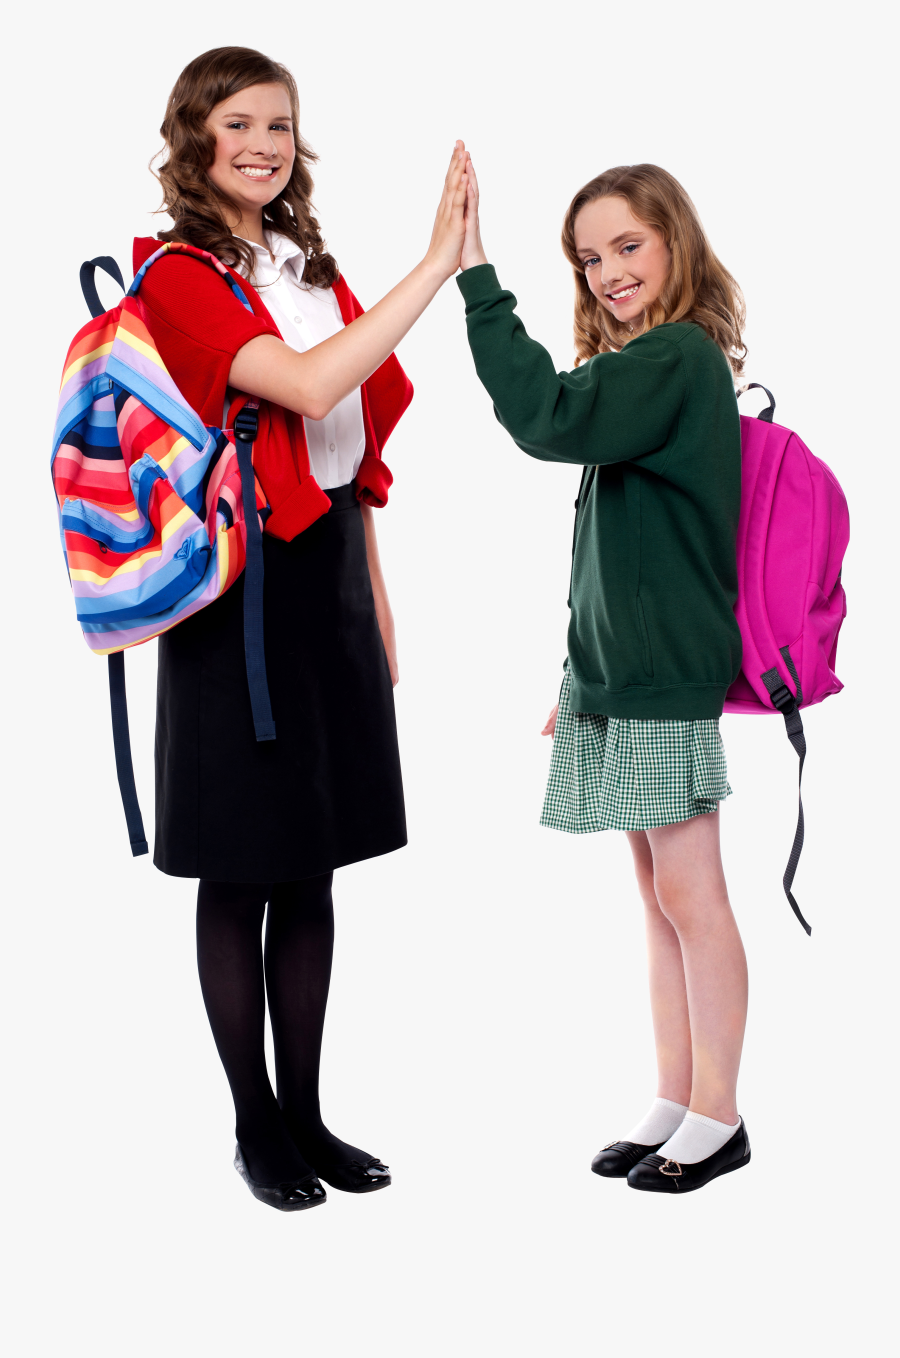 Woman Student Png - School Students Image Hd Png, Transparent Clipart